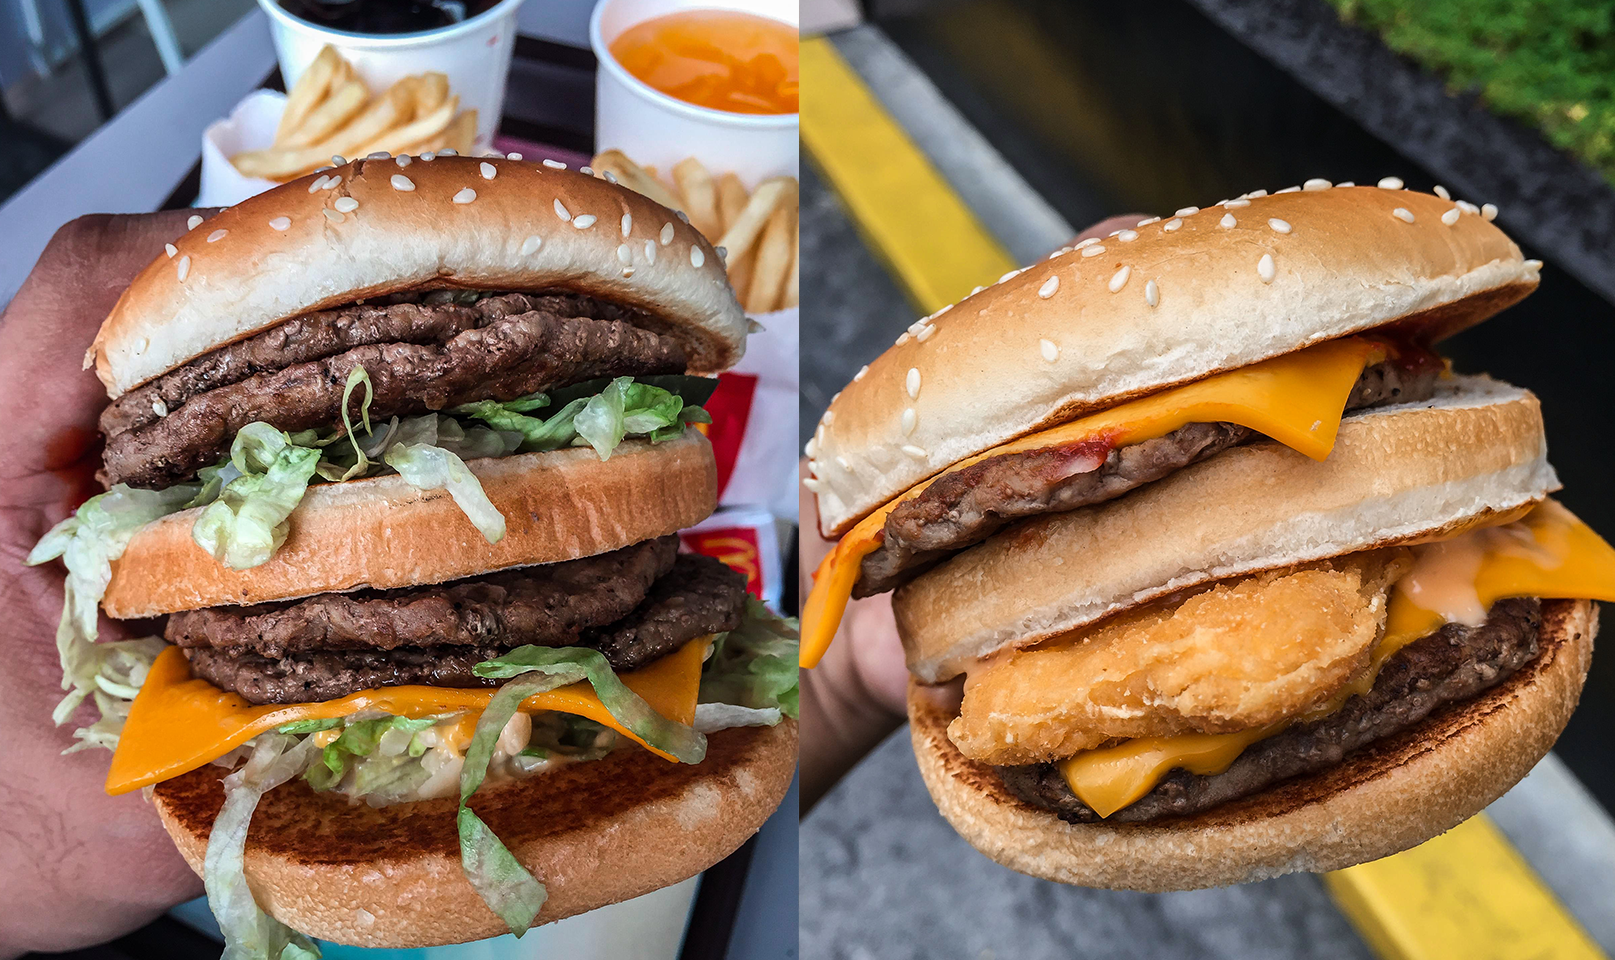 McDonald's Secret Menu with The BCB and Double Big Mac: Out Now!